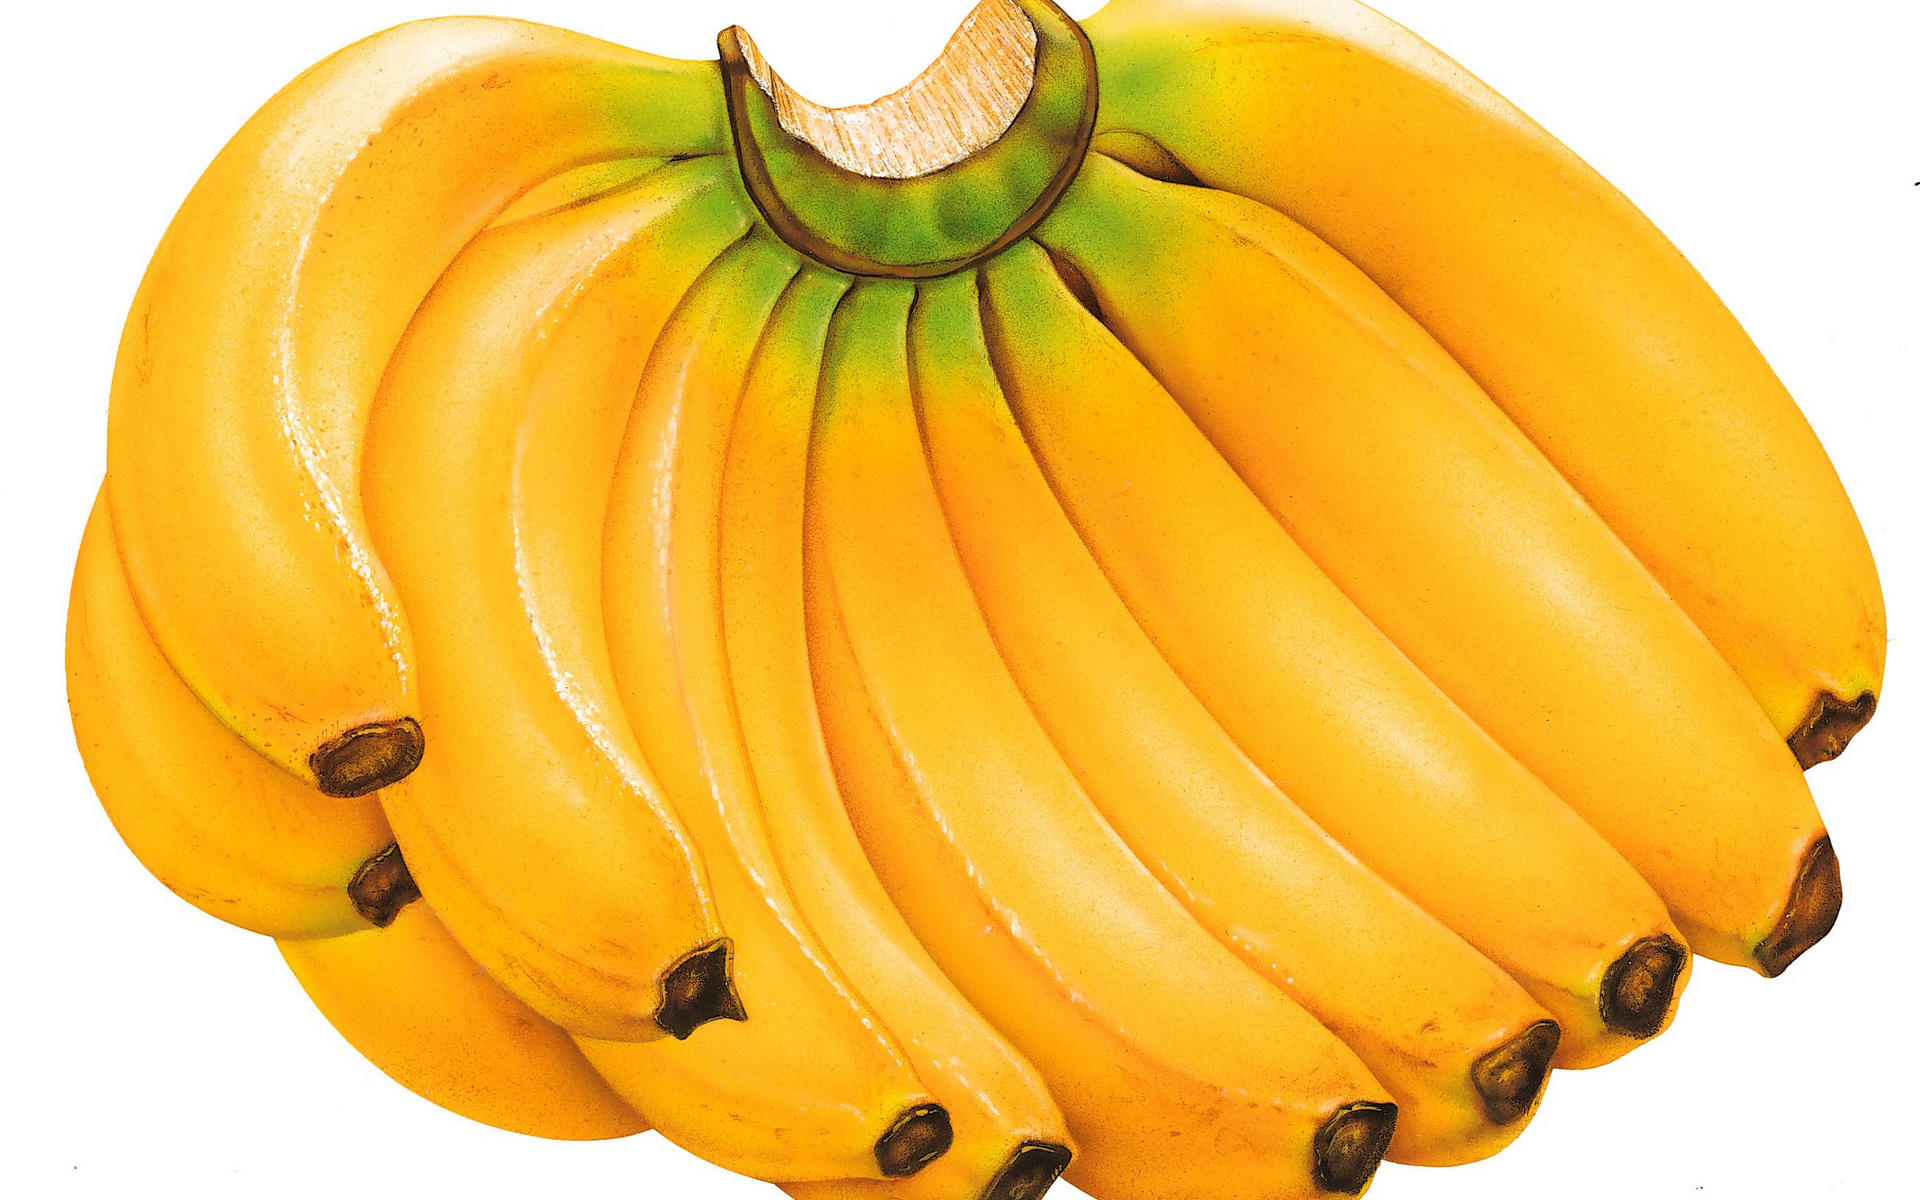 banana hd wallpaper | background image | 1920x1200 | id:367377